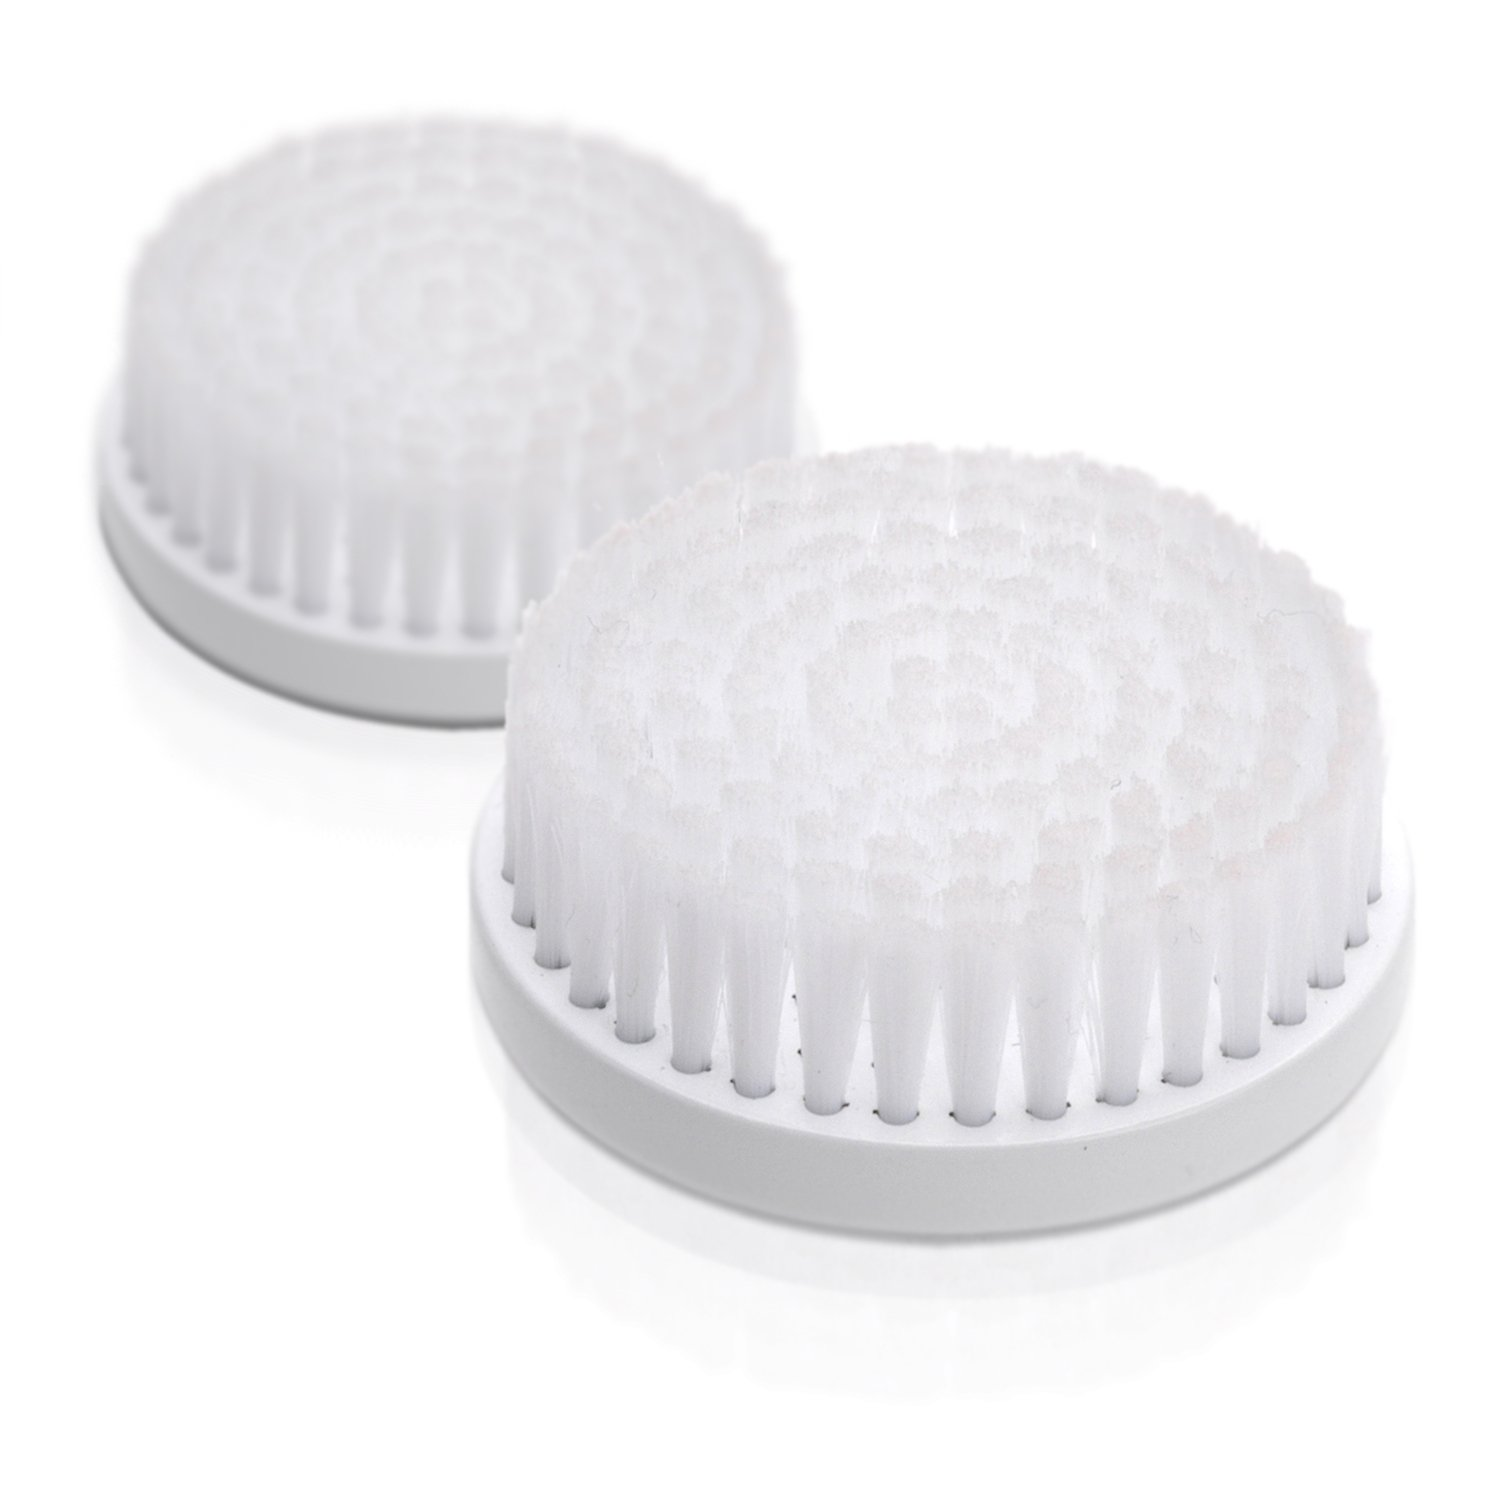 Replacement Heads for The Professional Skin Care System by ToiletTree Products, Soft Facial Brush